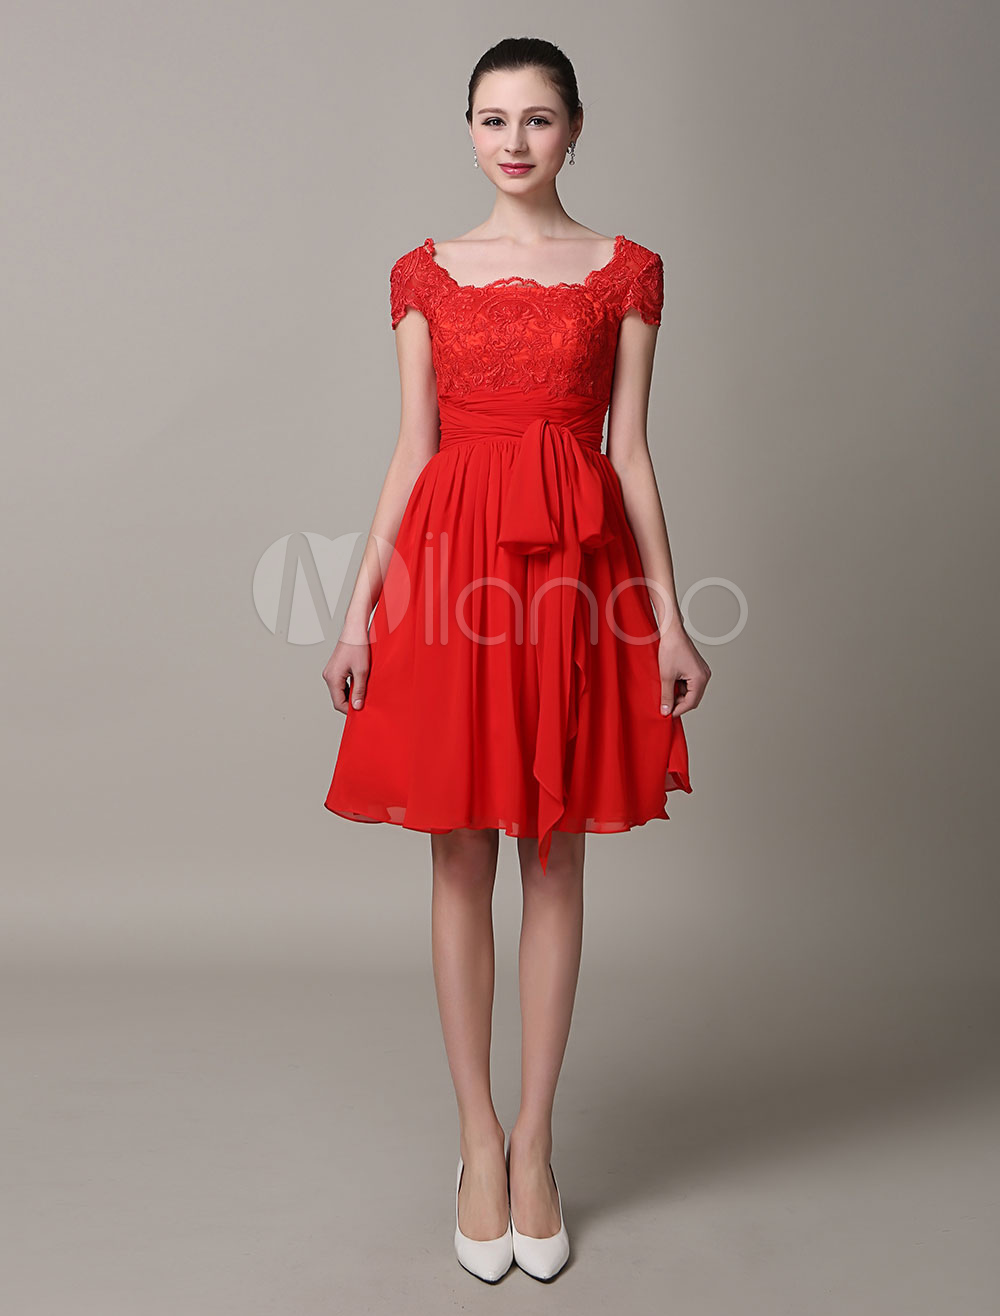 Red A-Line Lace Sash Homecoming Dress (Wedding) photo